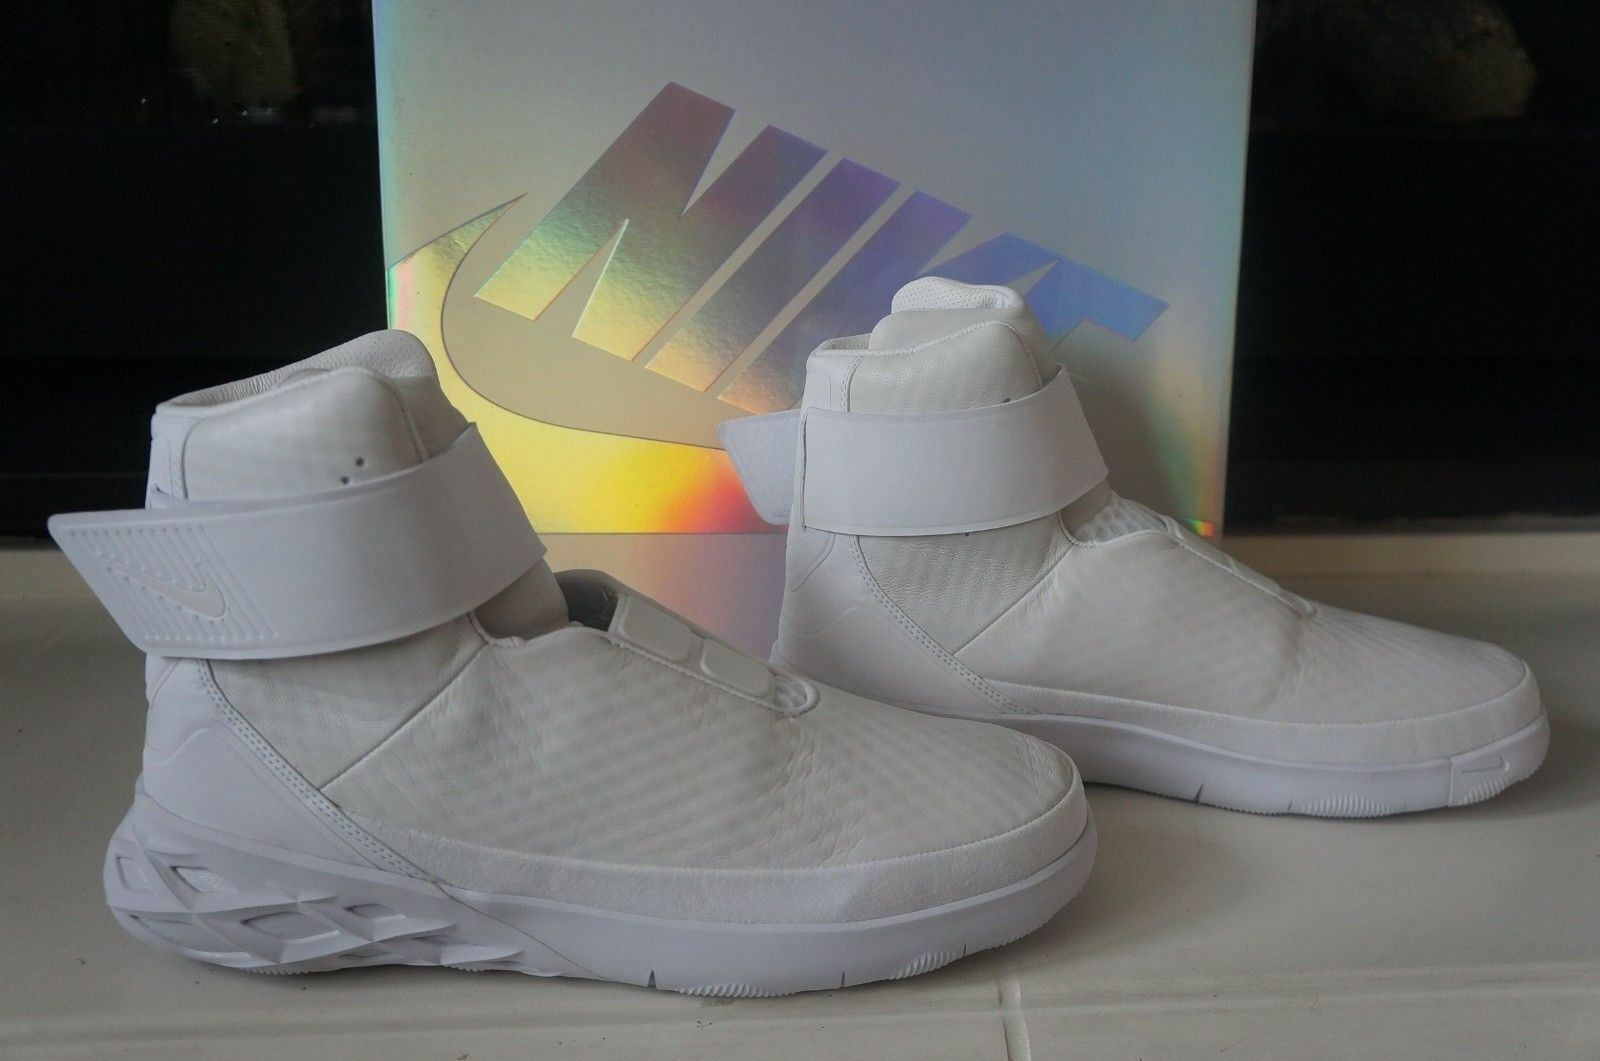 NEW in BOX NIKE SWOOSH HNTR HUNTER WHITE SNEAKERS High Tops 832820-101 SZ 12.5